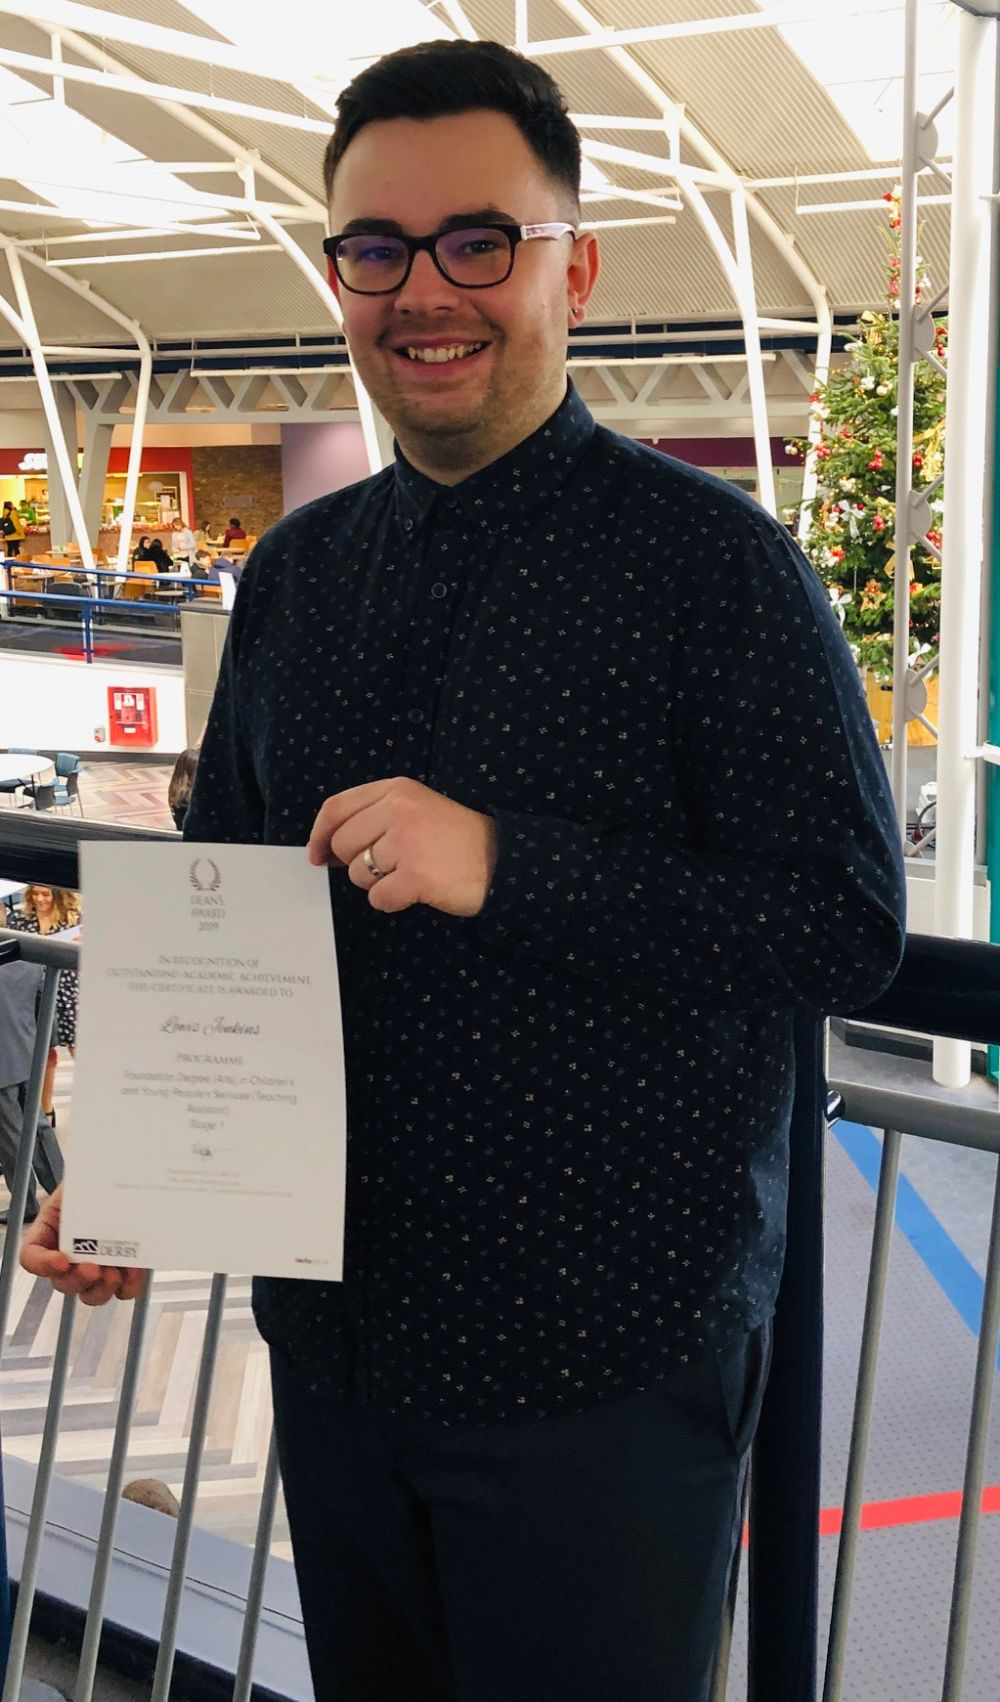 Prestigious university academic excellence award presented to Loughborough College student